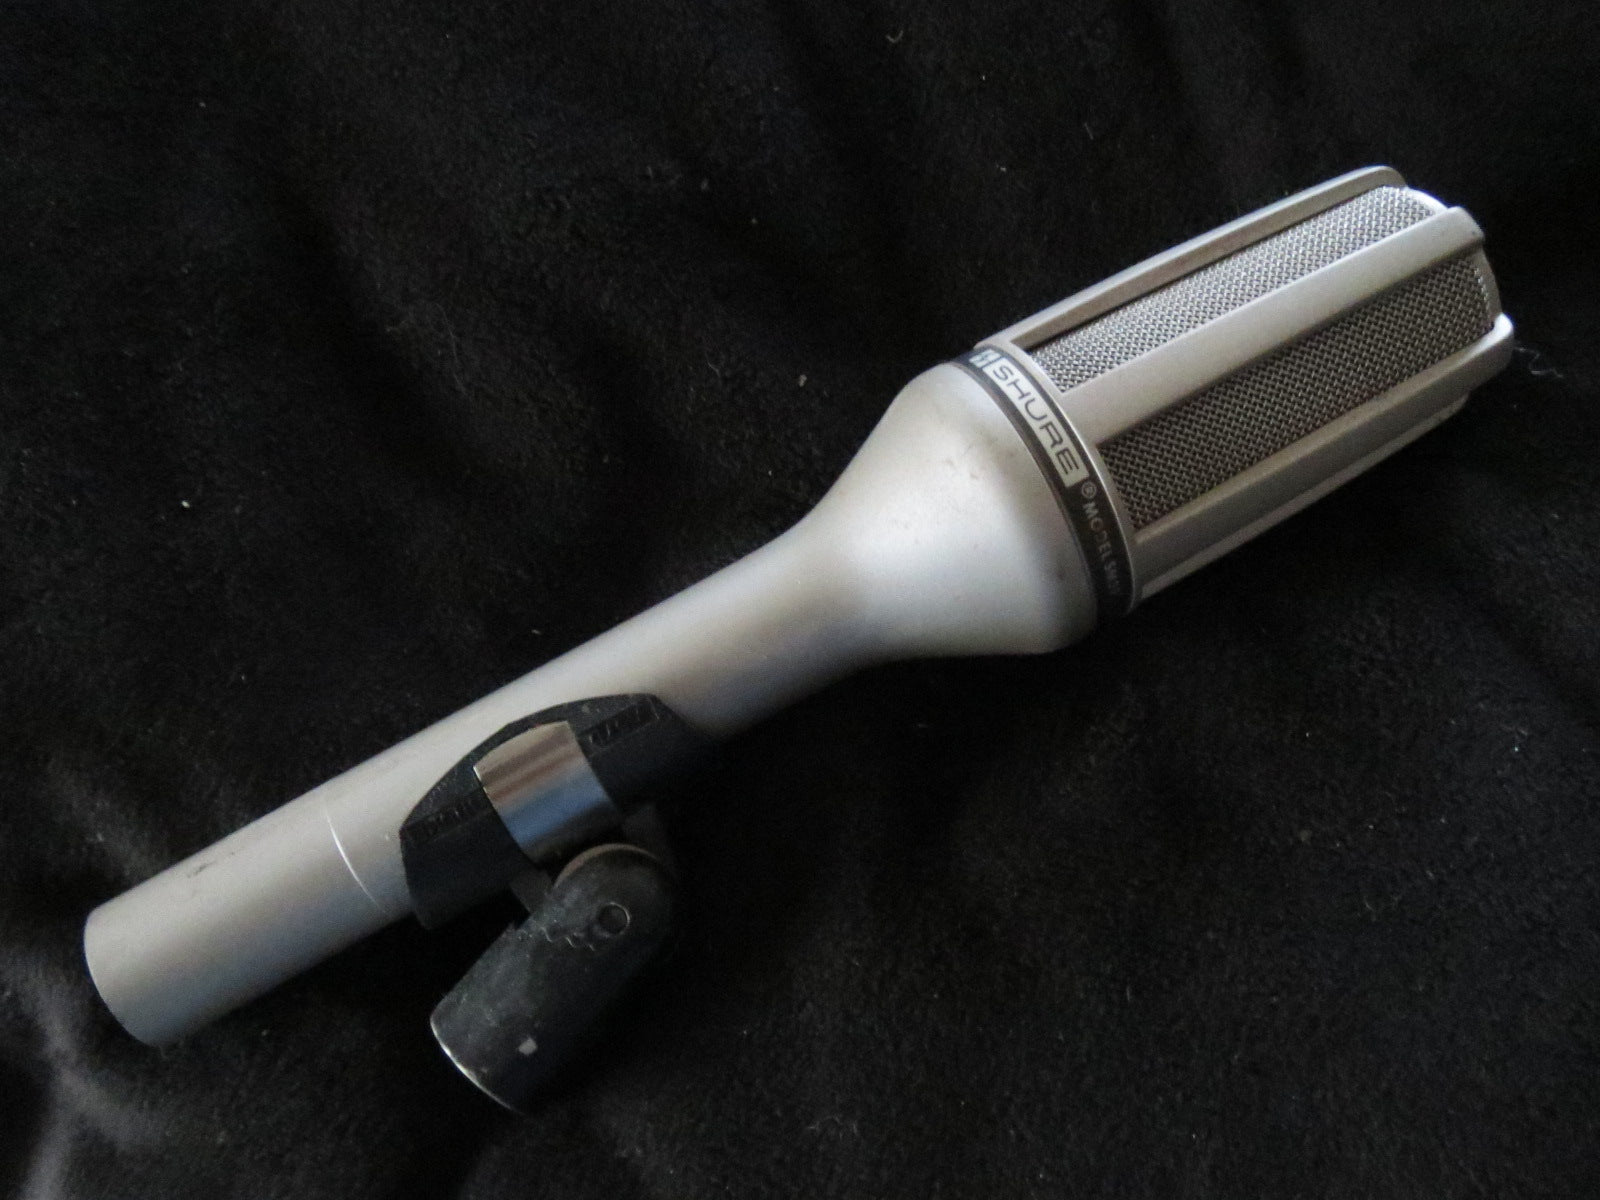 SHURE SM59 VINTAGE DYNAMIC CARDIOID MICROPHONE WITH XLR CONNECTOR